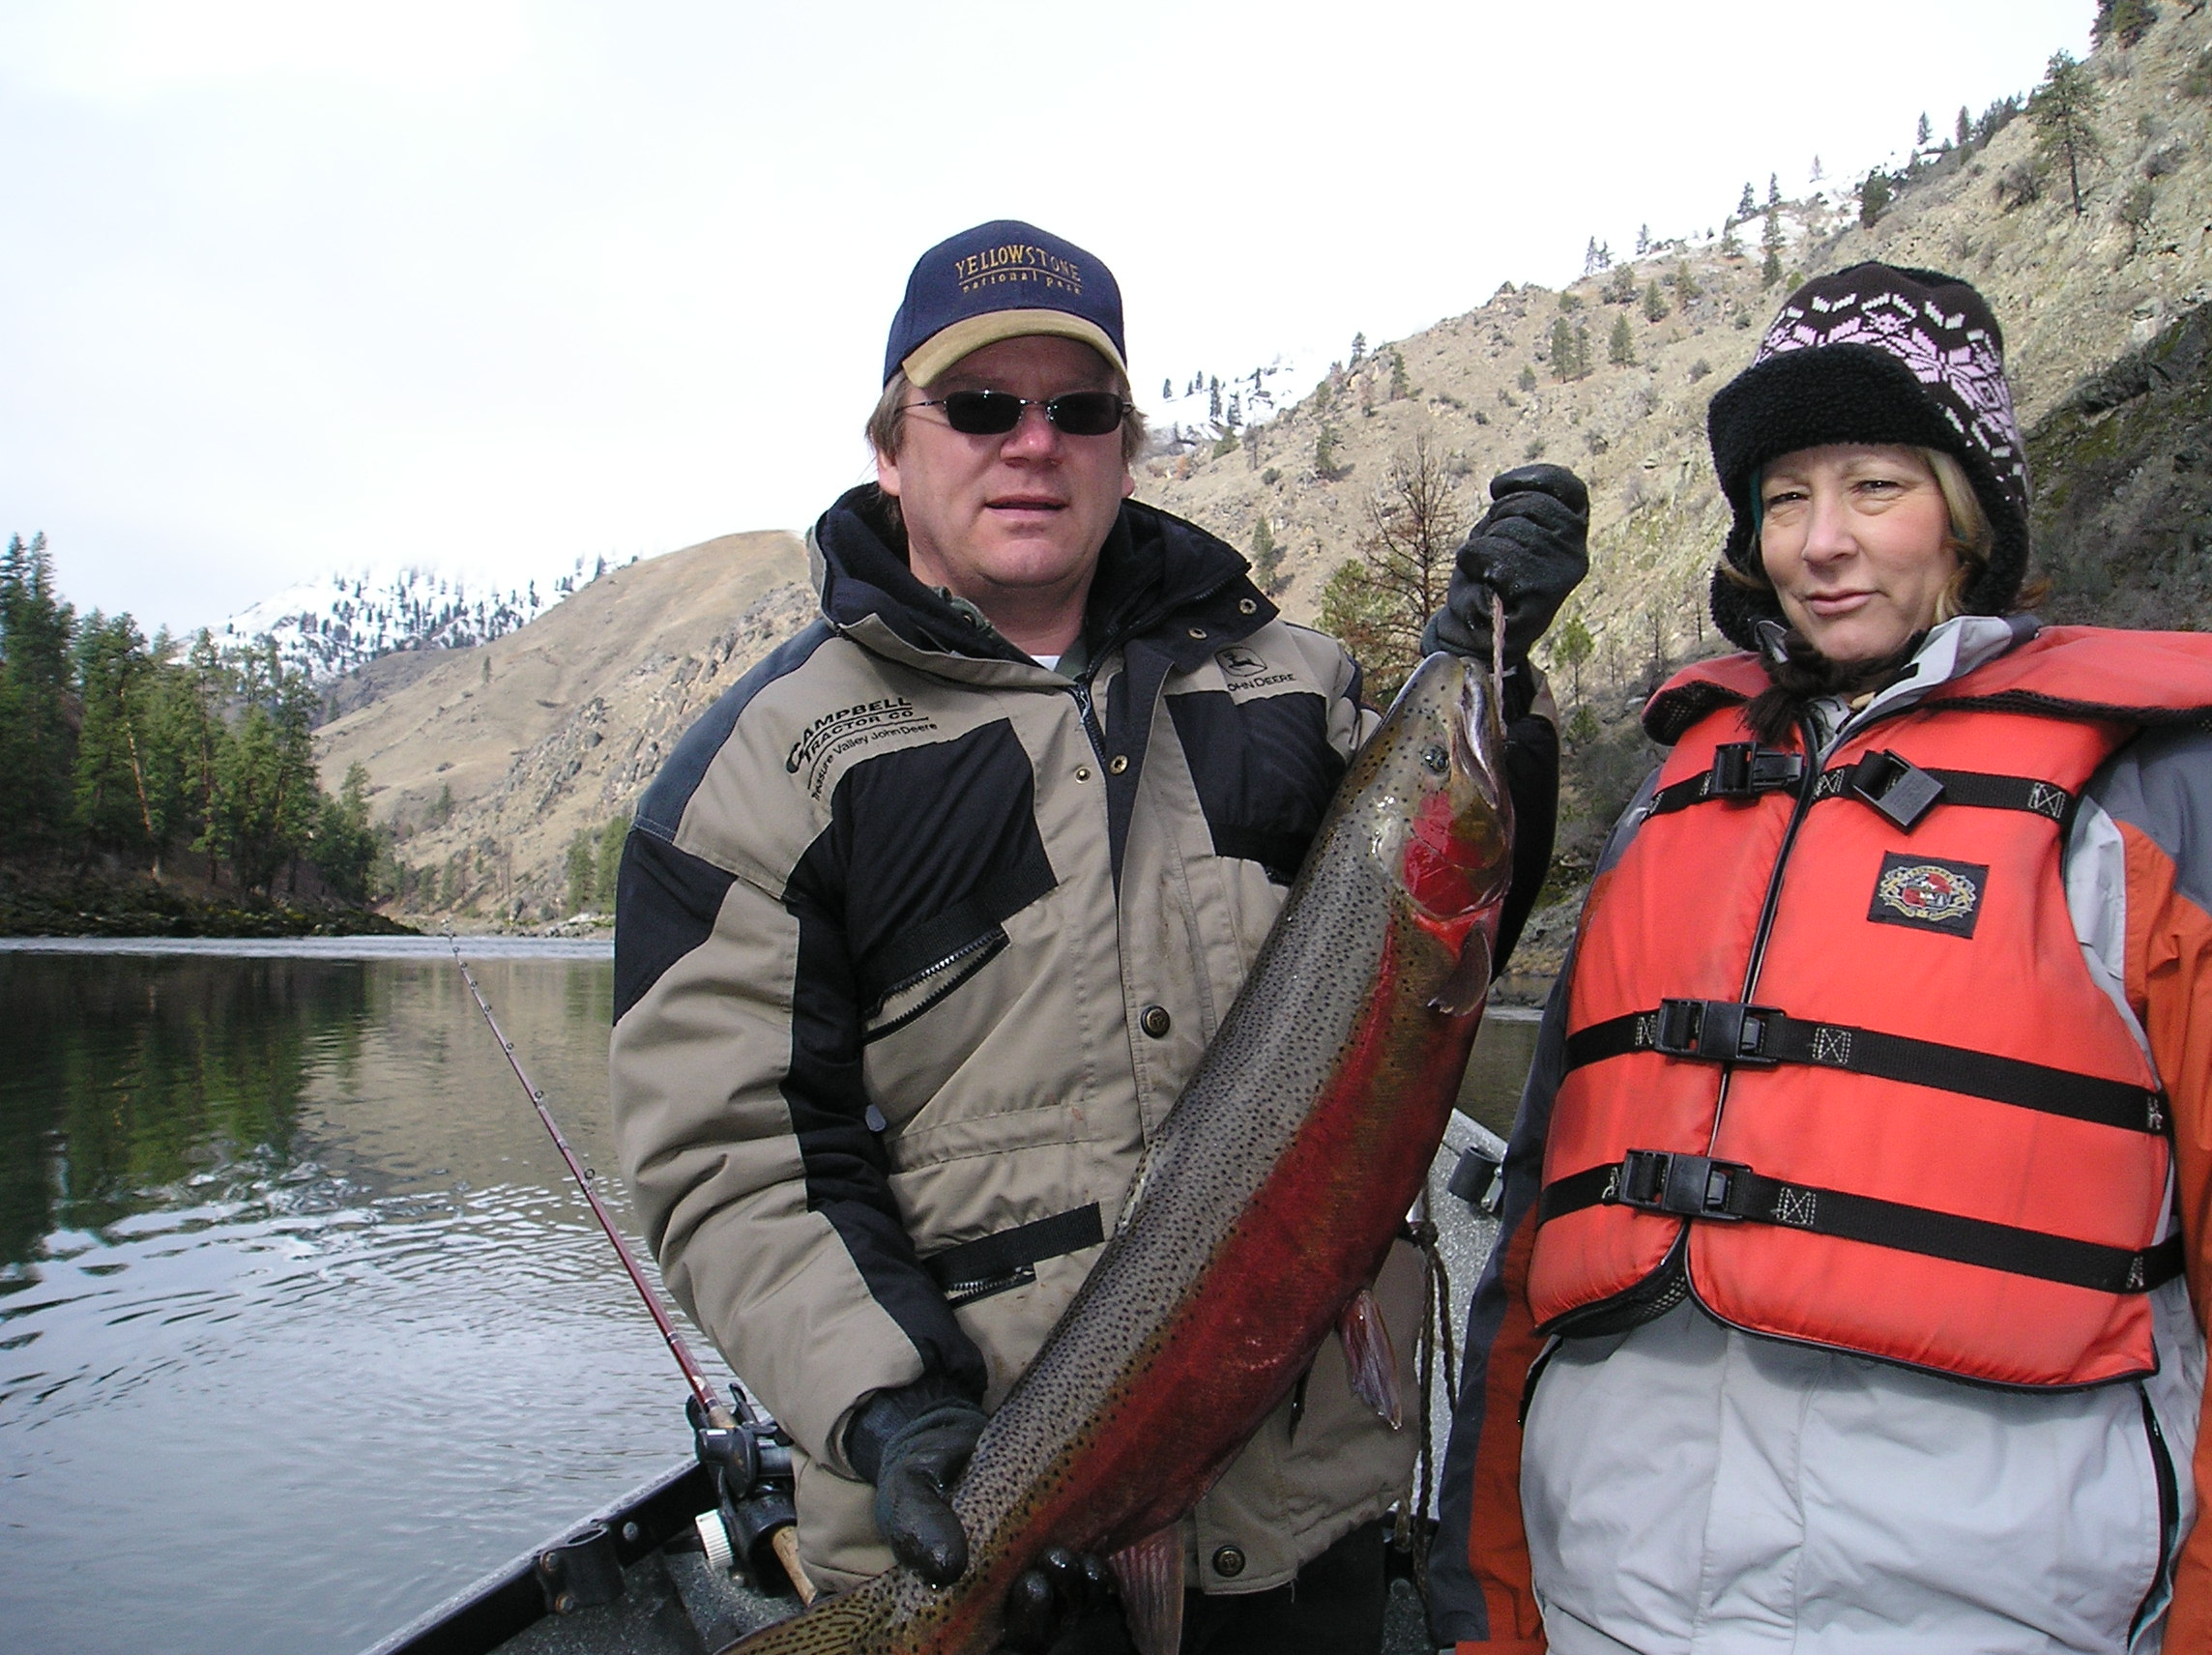 Steelhead    Native Idaho Steelhead in excess of 40 inches and weighing over 20 lbs. is one of the Salmon River's signature sport fish. The hatchery fish make excellent table fare and the season and limits are normally quite liberal.